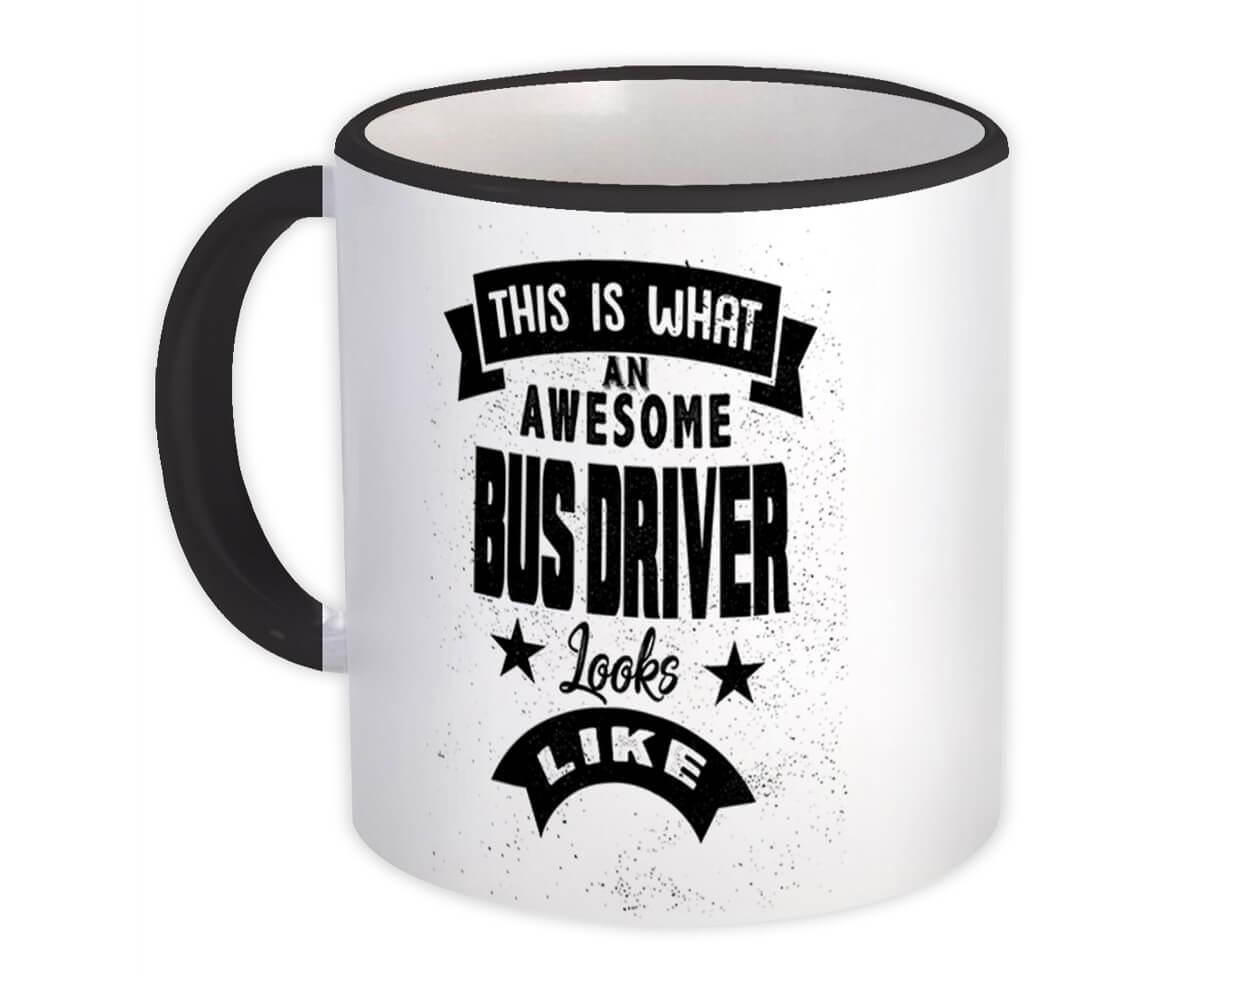 This is What an Awesome BUS DRIVER Looks Like : Gift Mug Work Coworker Christmas